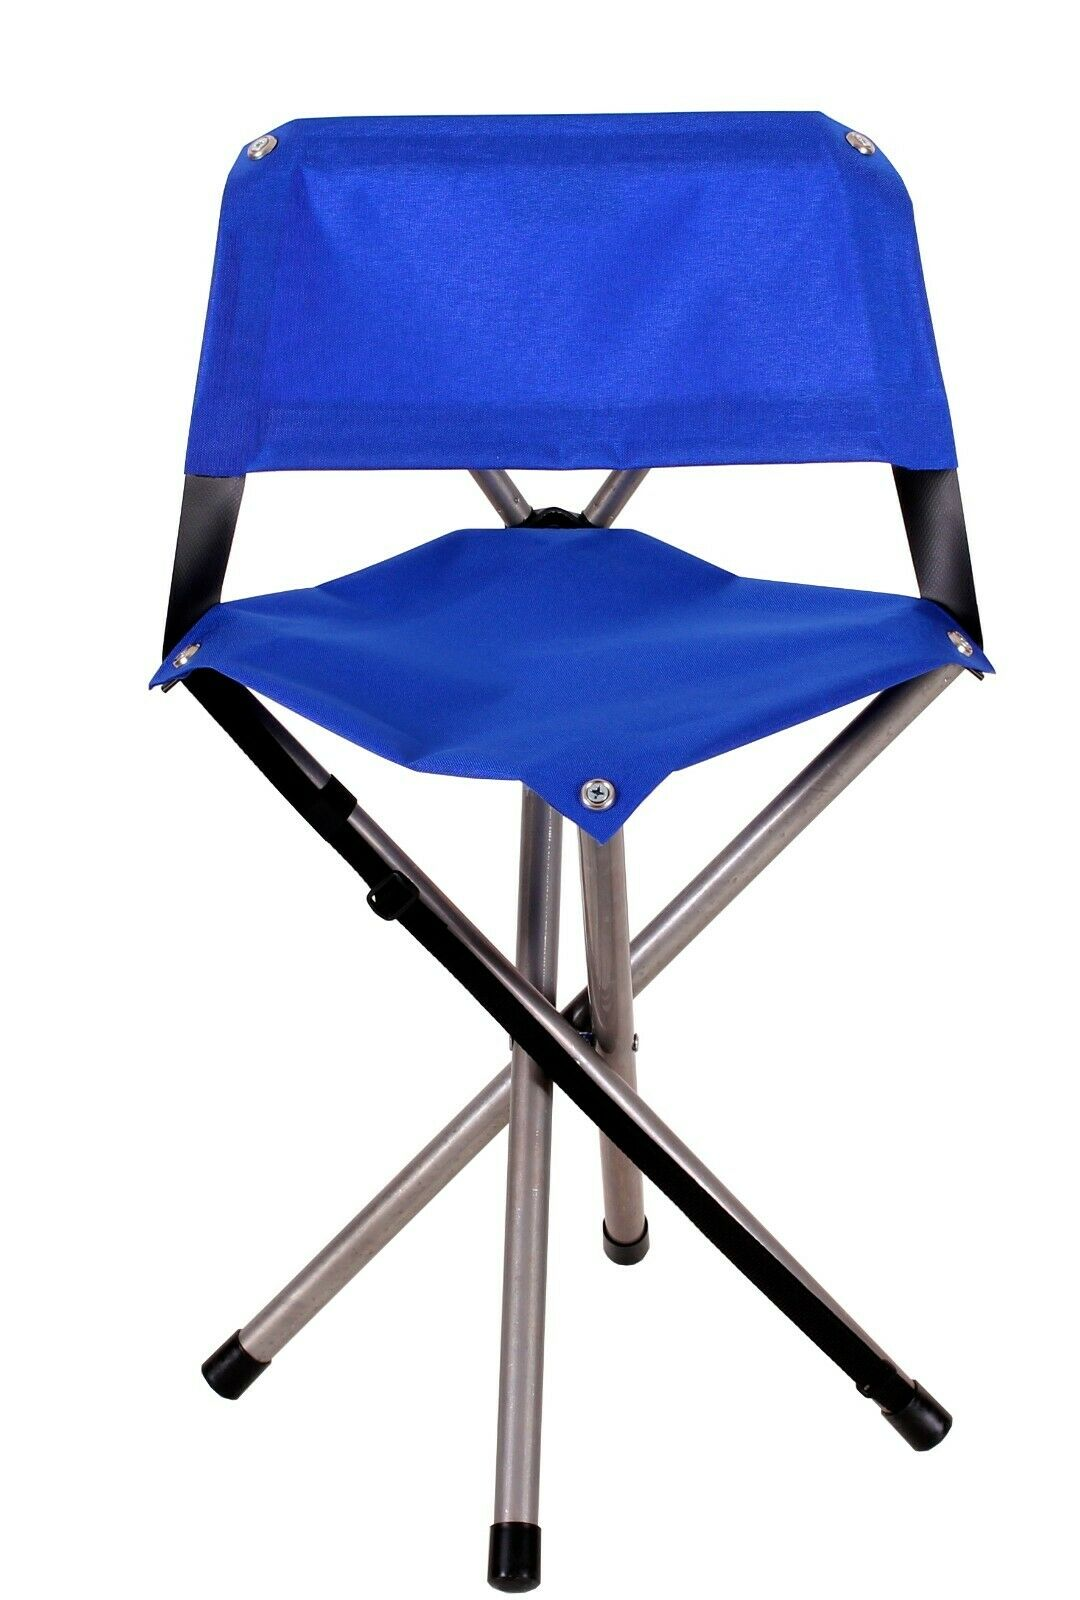 Camp Time Roll-a-Chair bluee Portable Compact Lightweight Camping Chair  USA Made  large selection